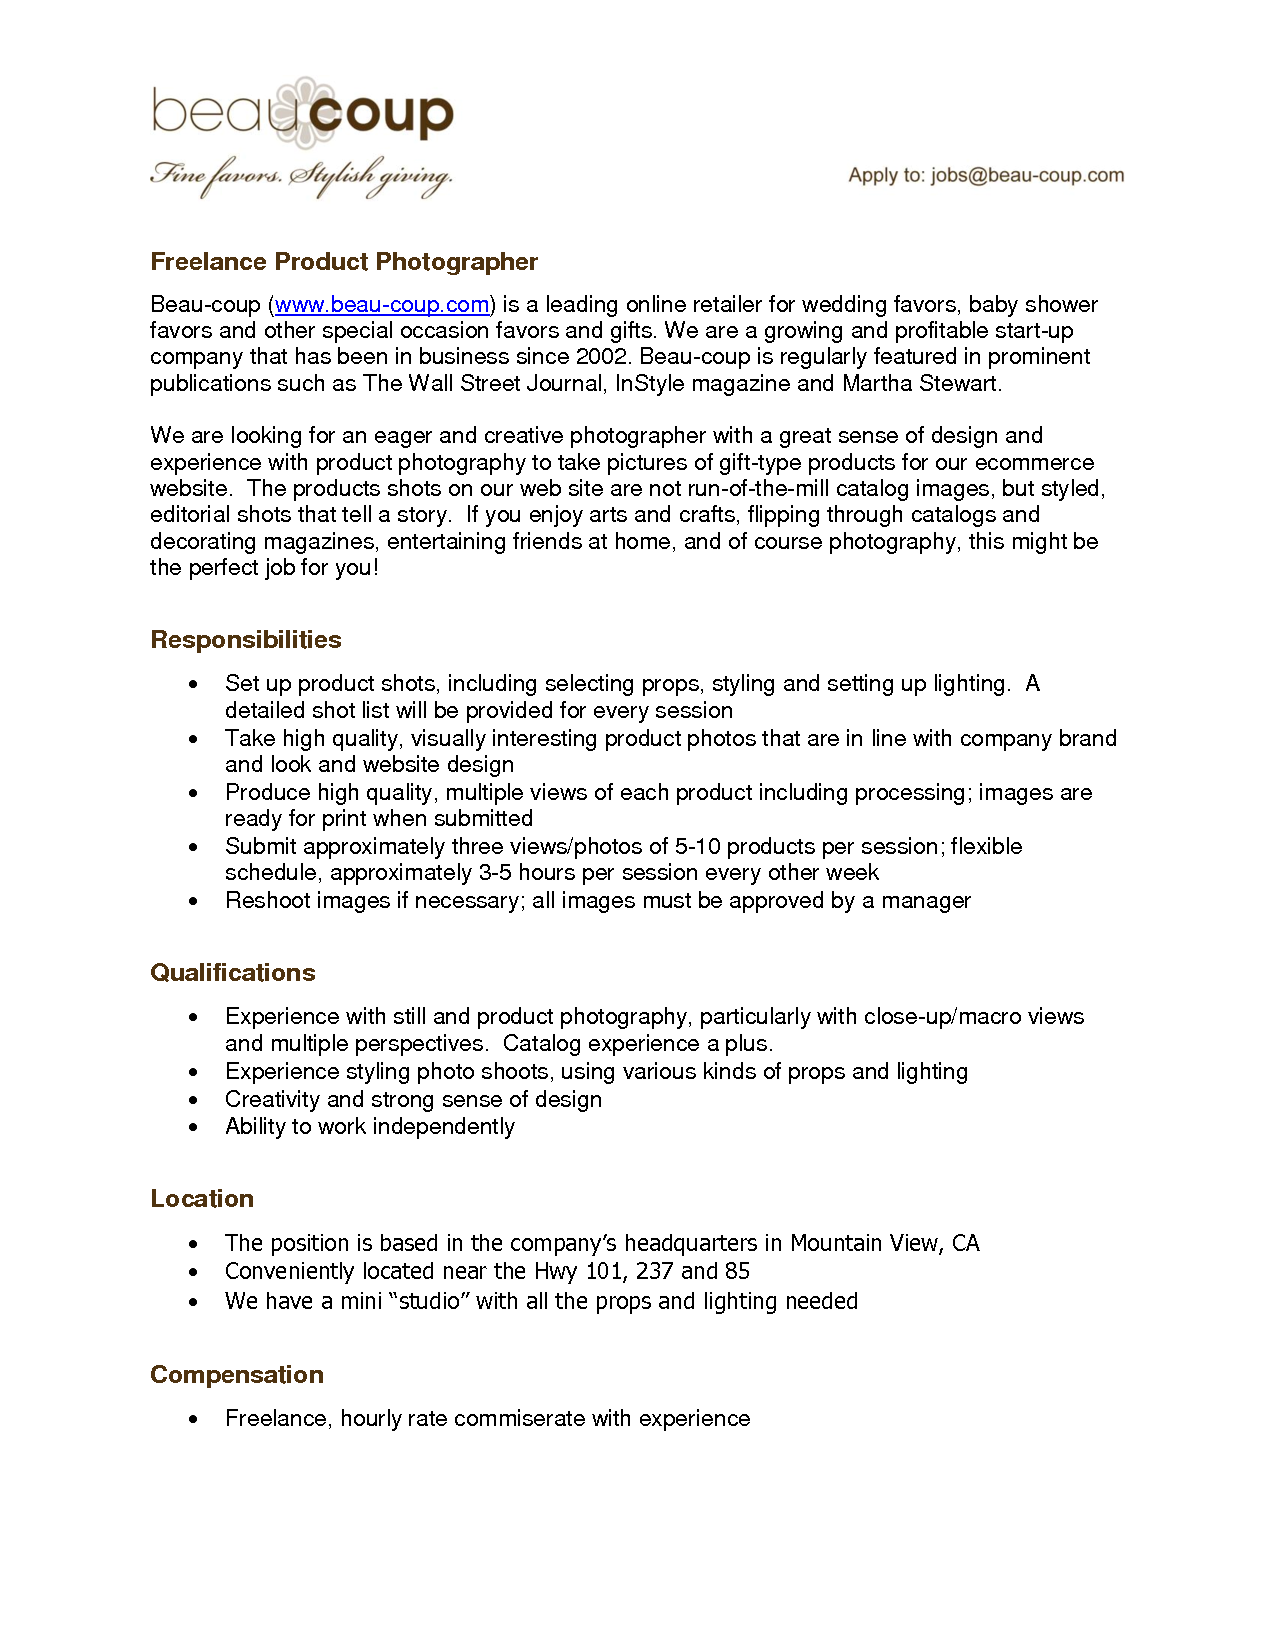 Resume For A Photographer Freelance Photographer Resume Freelance - Photography-resume-samples